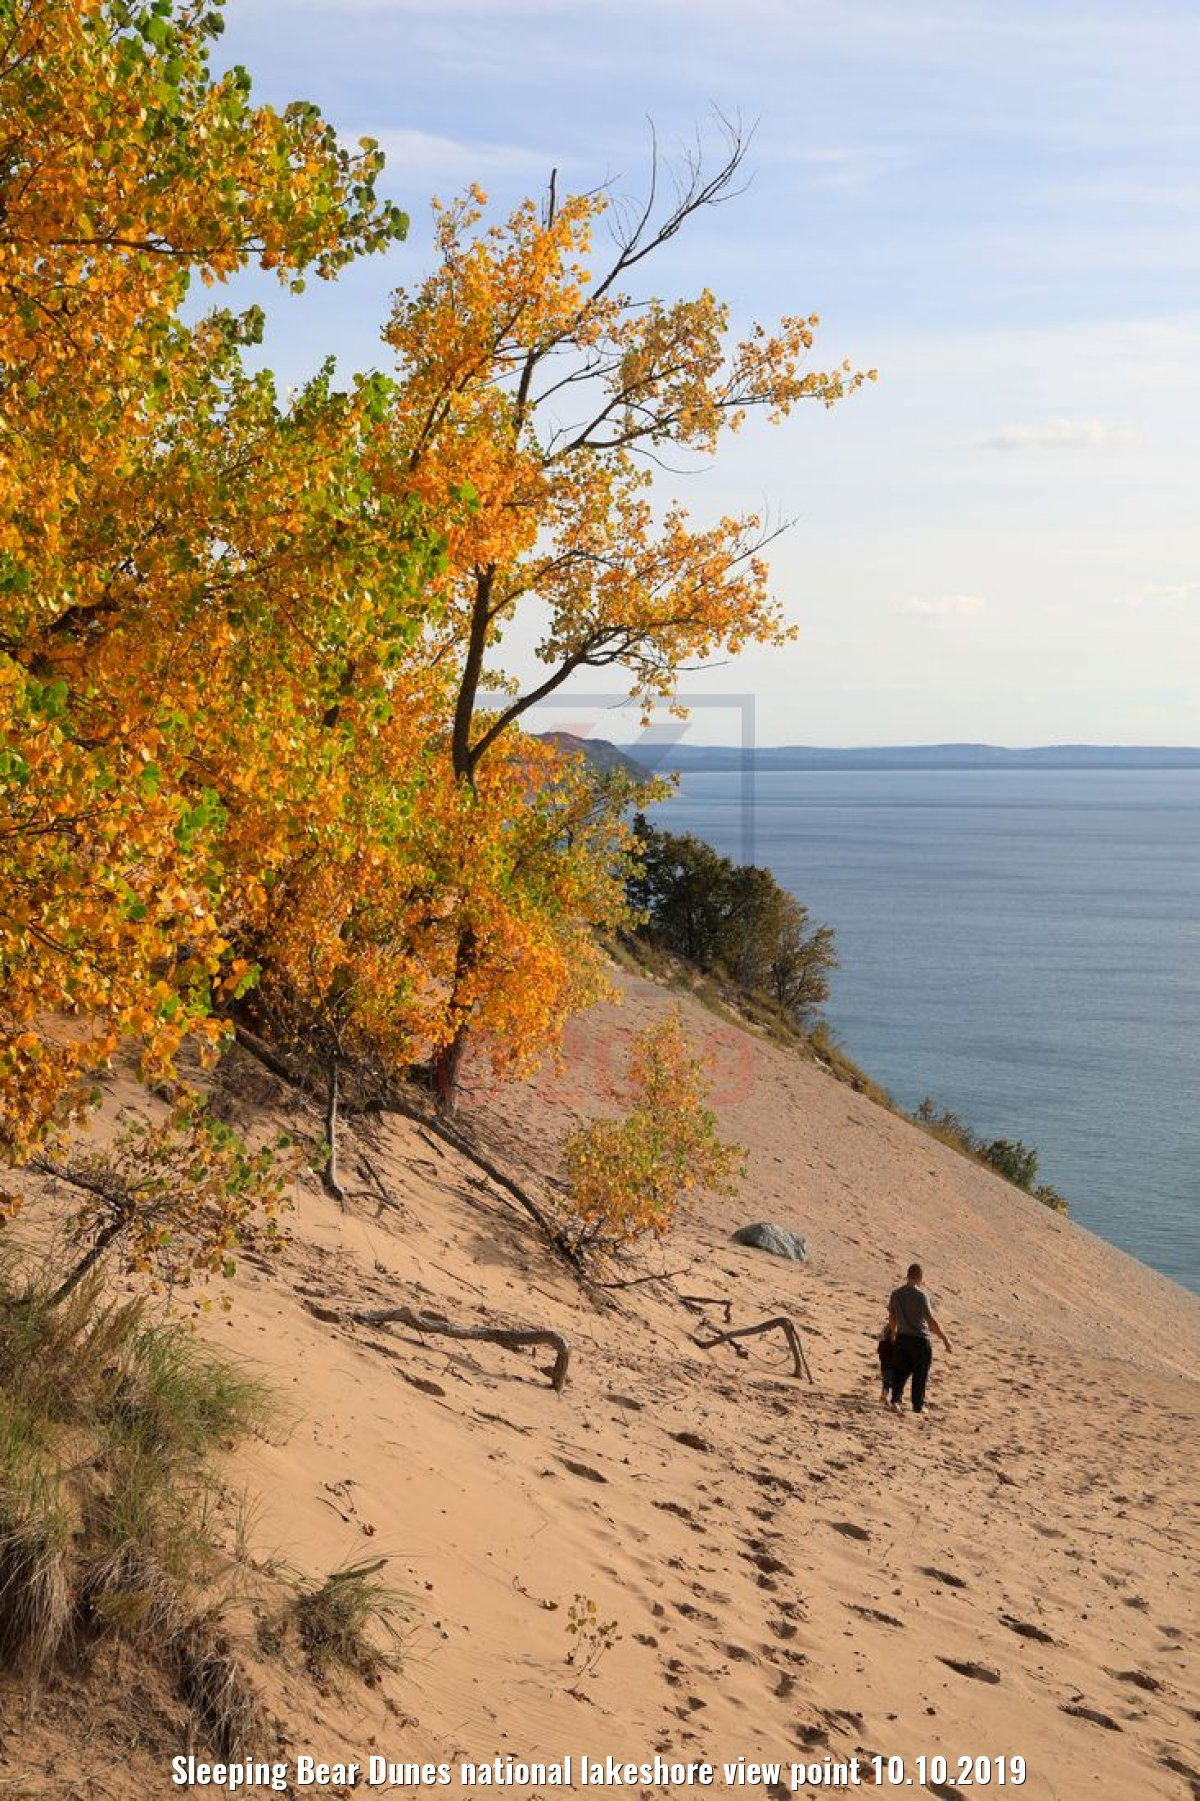 Sleeping Bear Dunes national lakeshore view point 10.10.2019